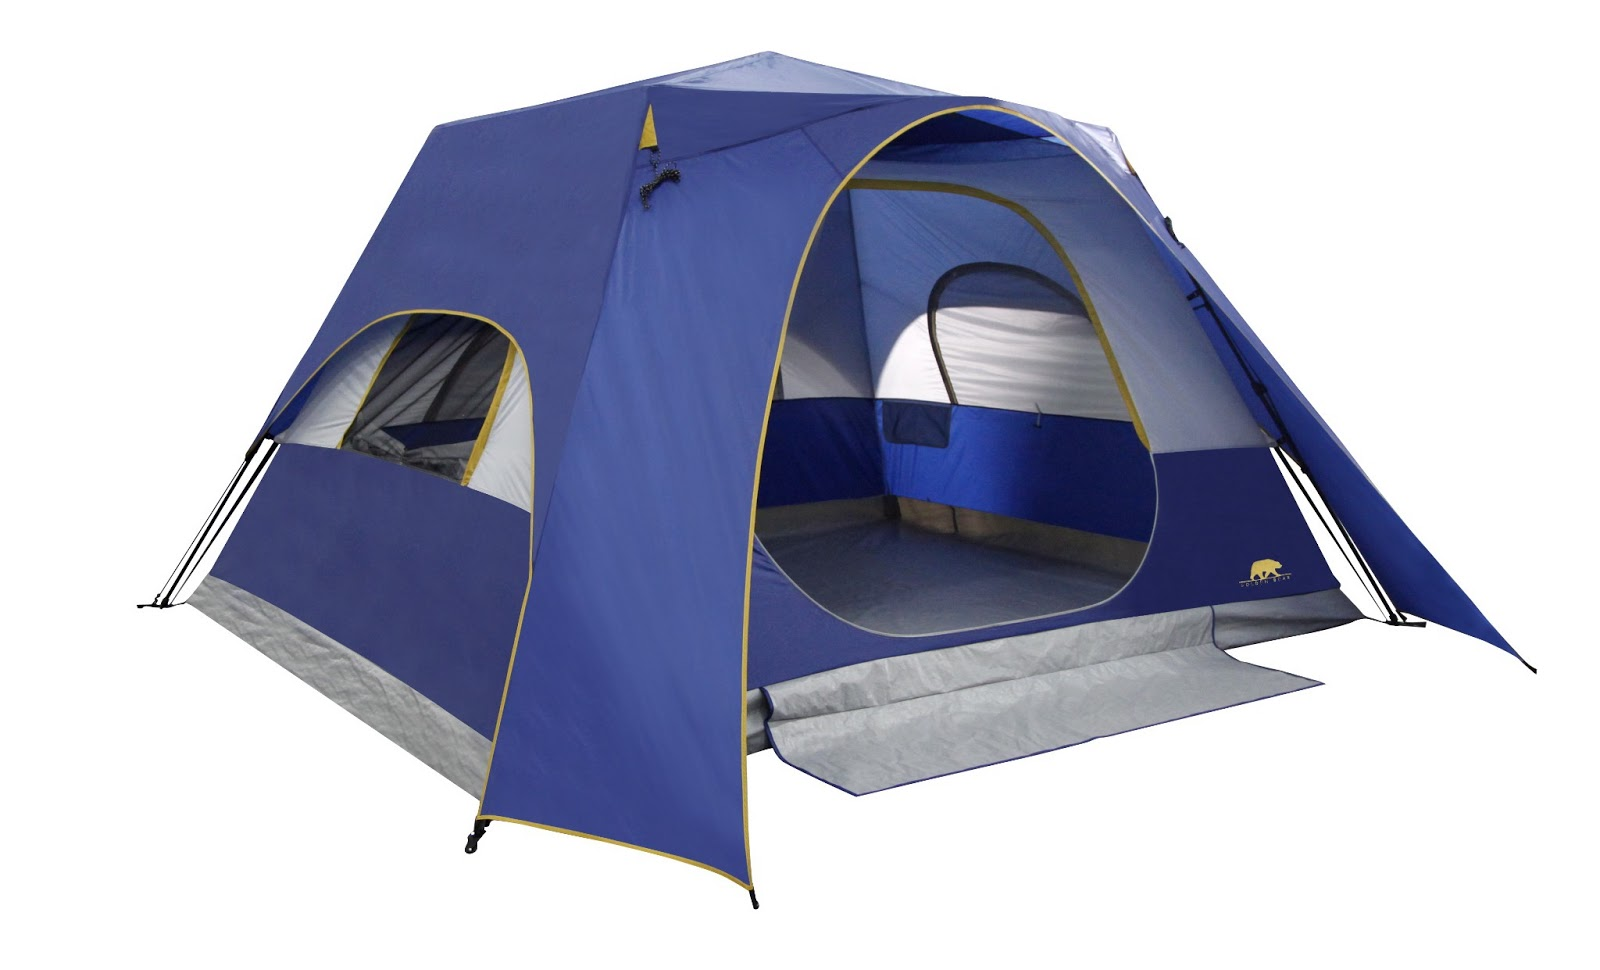 Shop for Big Agnes Tents at REI - FREE SHIPPING With $50 minimum purchase. Top quality, great selection and expert advice you can trust. % Satisfaction Guarantee.